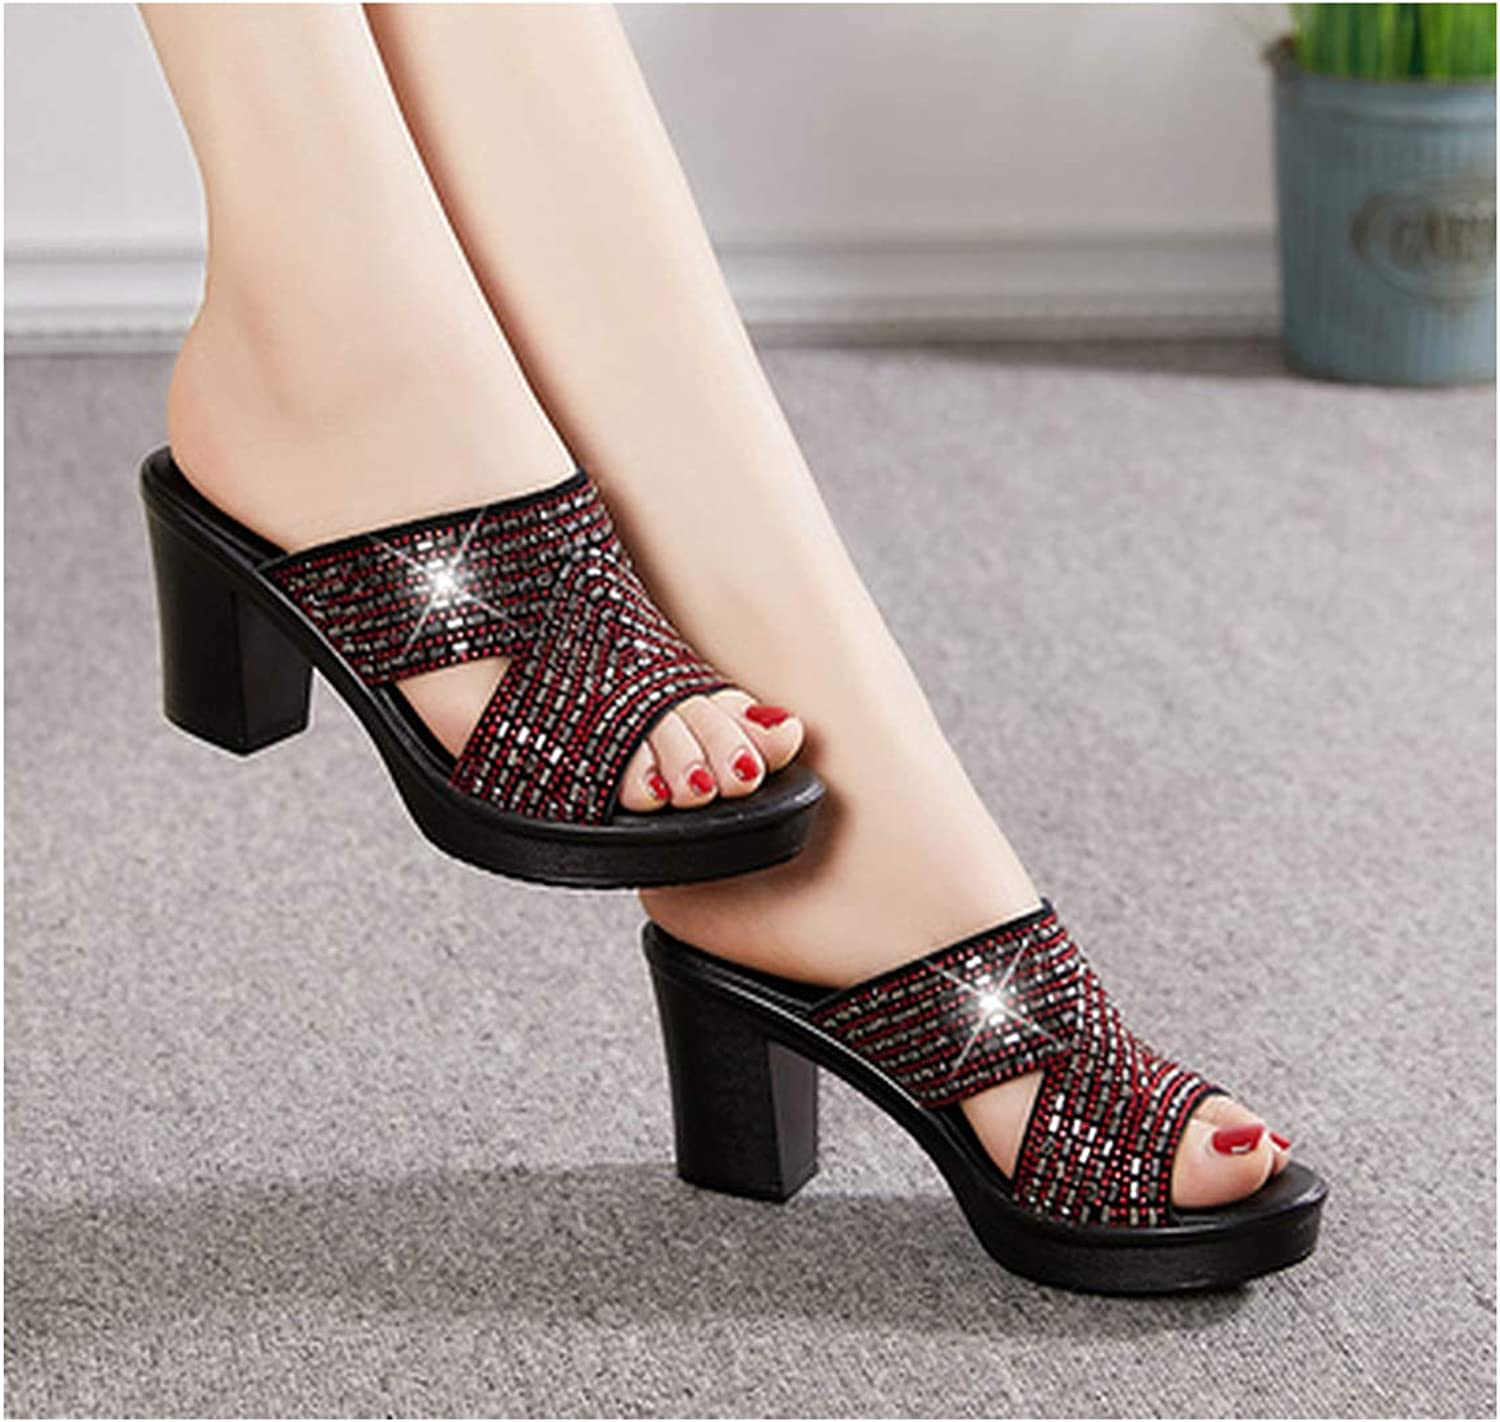 PREtty-2 Genuine Leather Women Slipper's 2019 Slippers Women High Heels Rhinestone Summer shoes